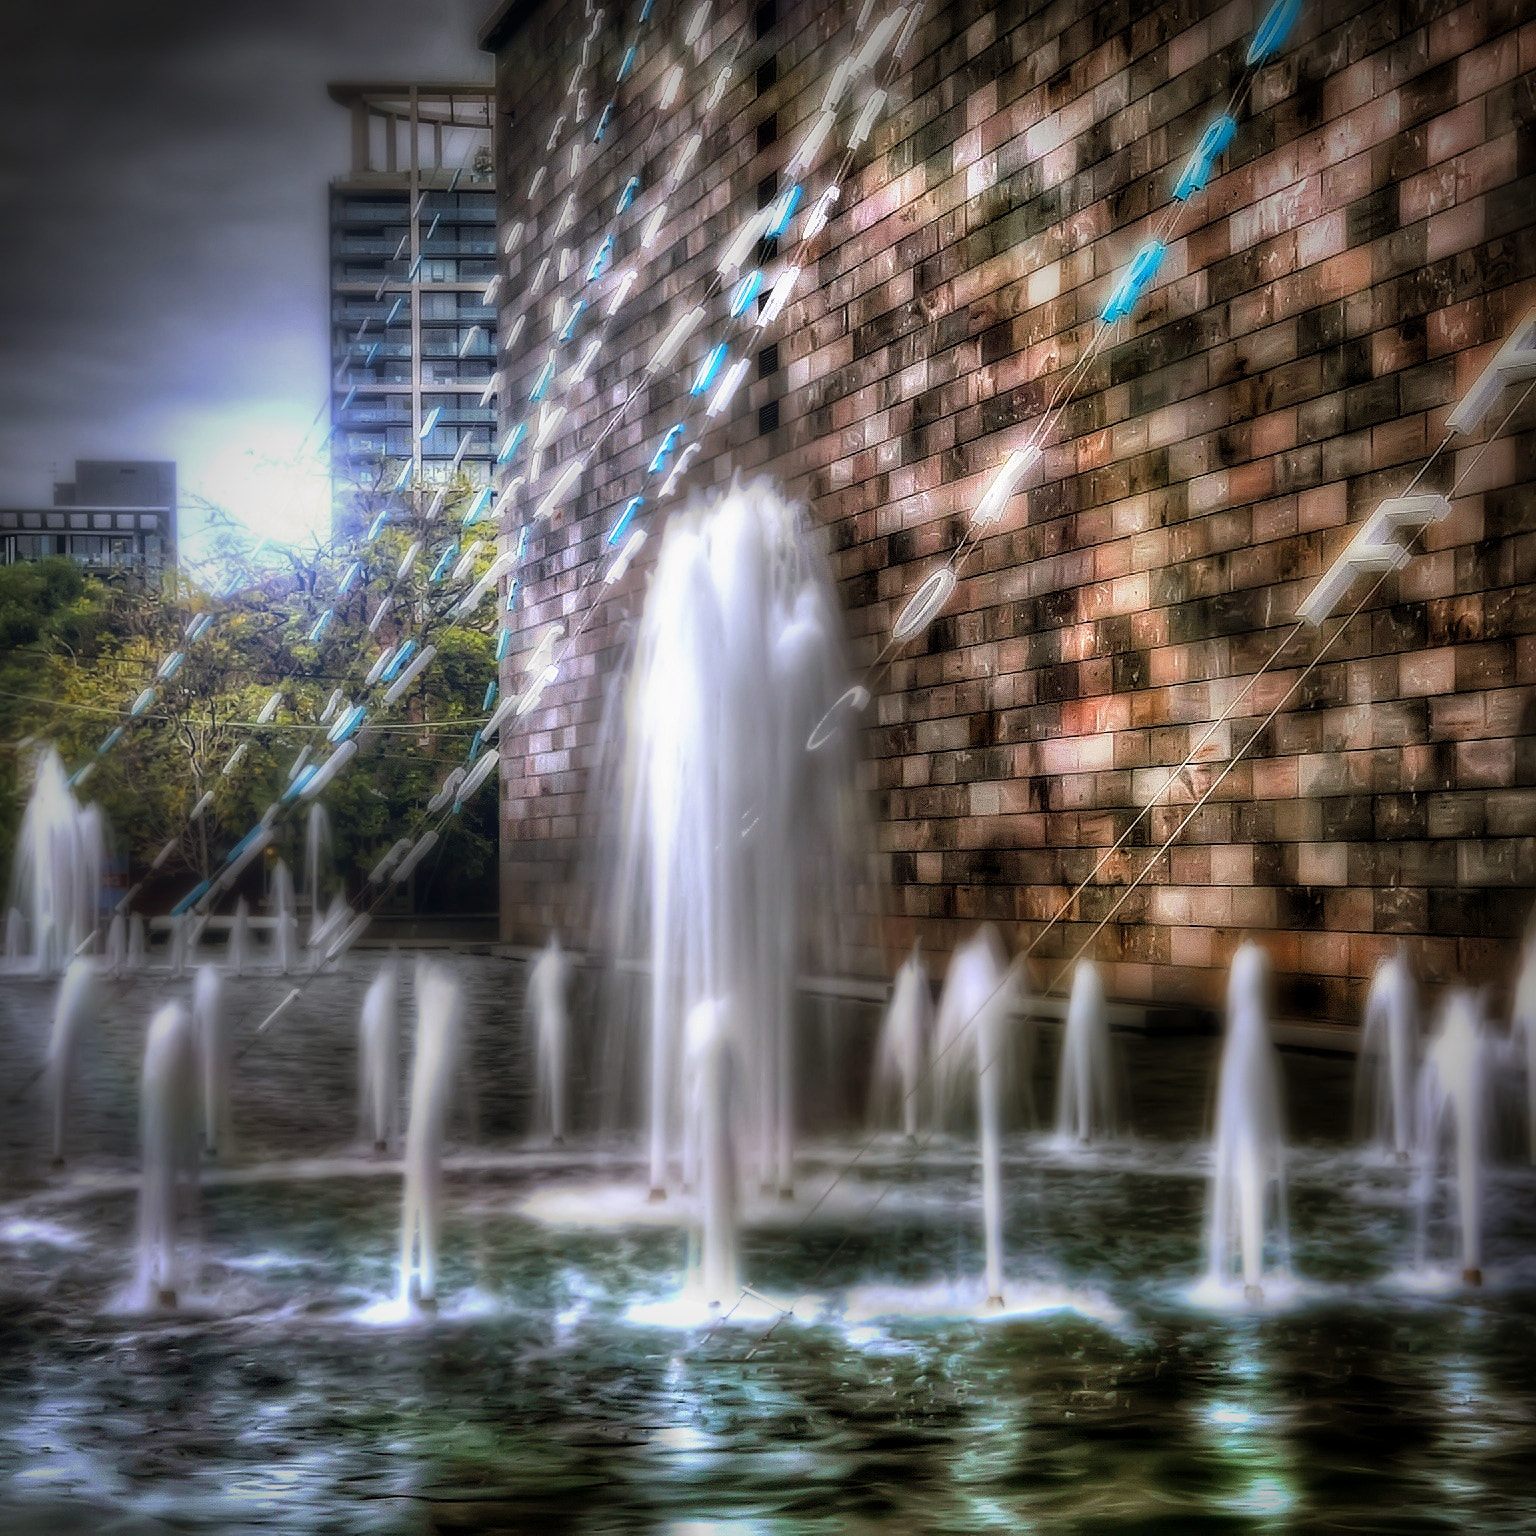 Photograph Water Fountain by Doctor Beat on 500px